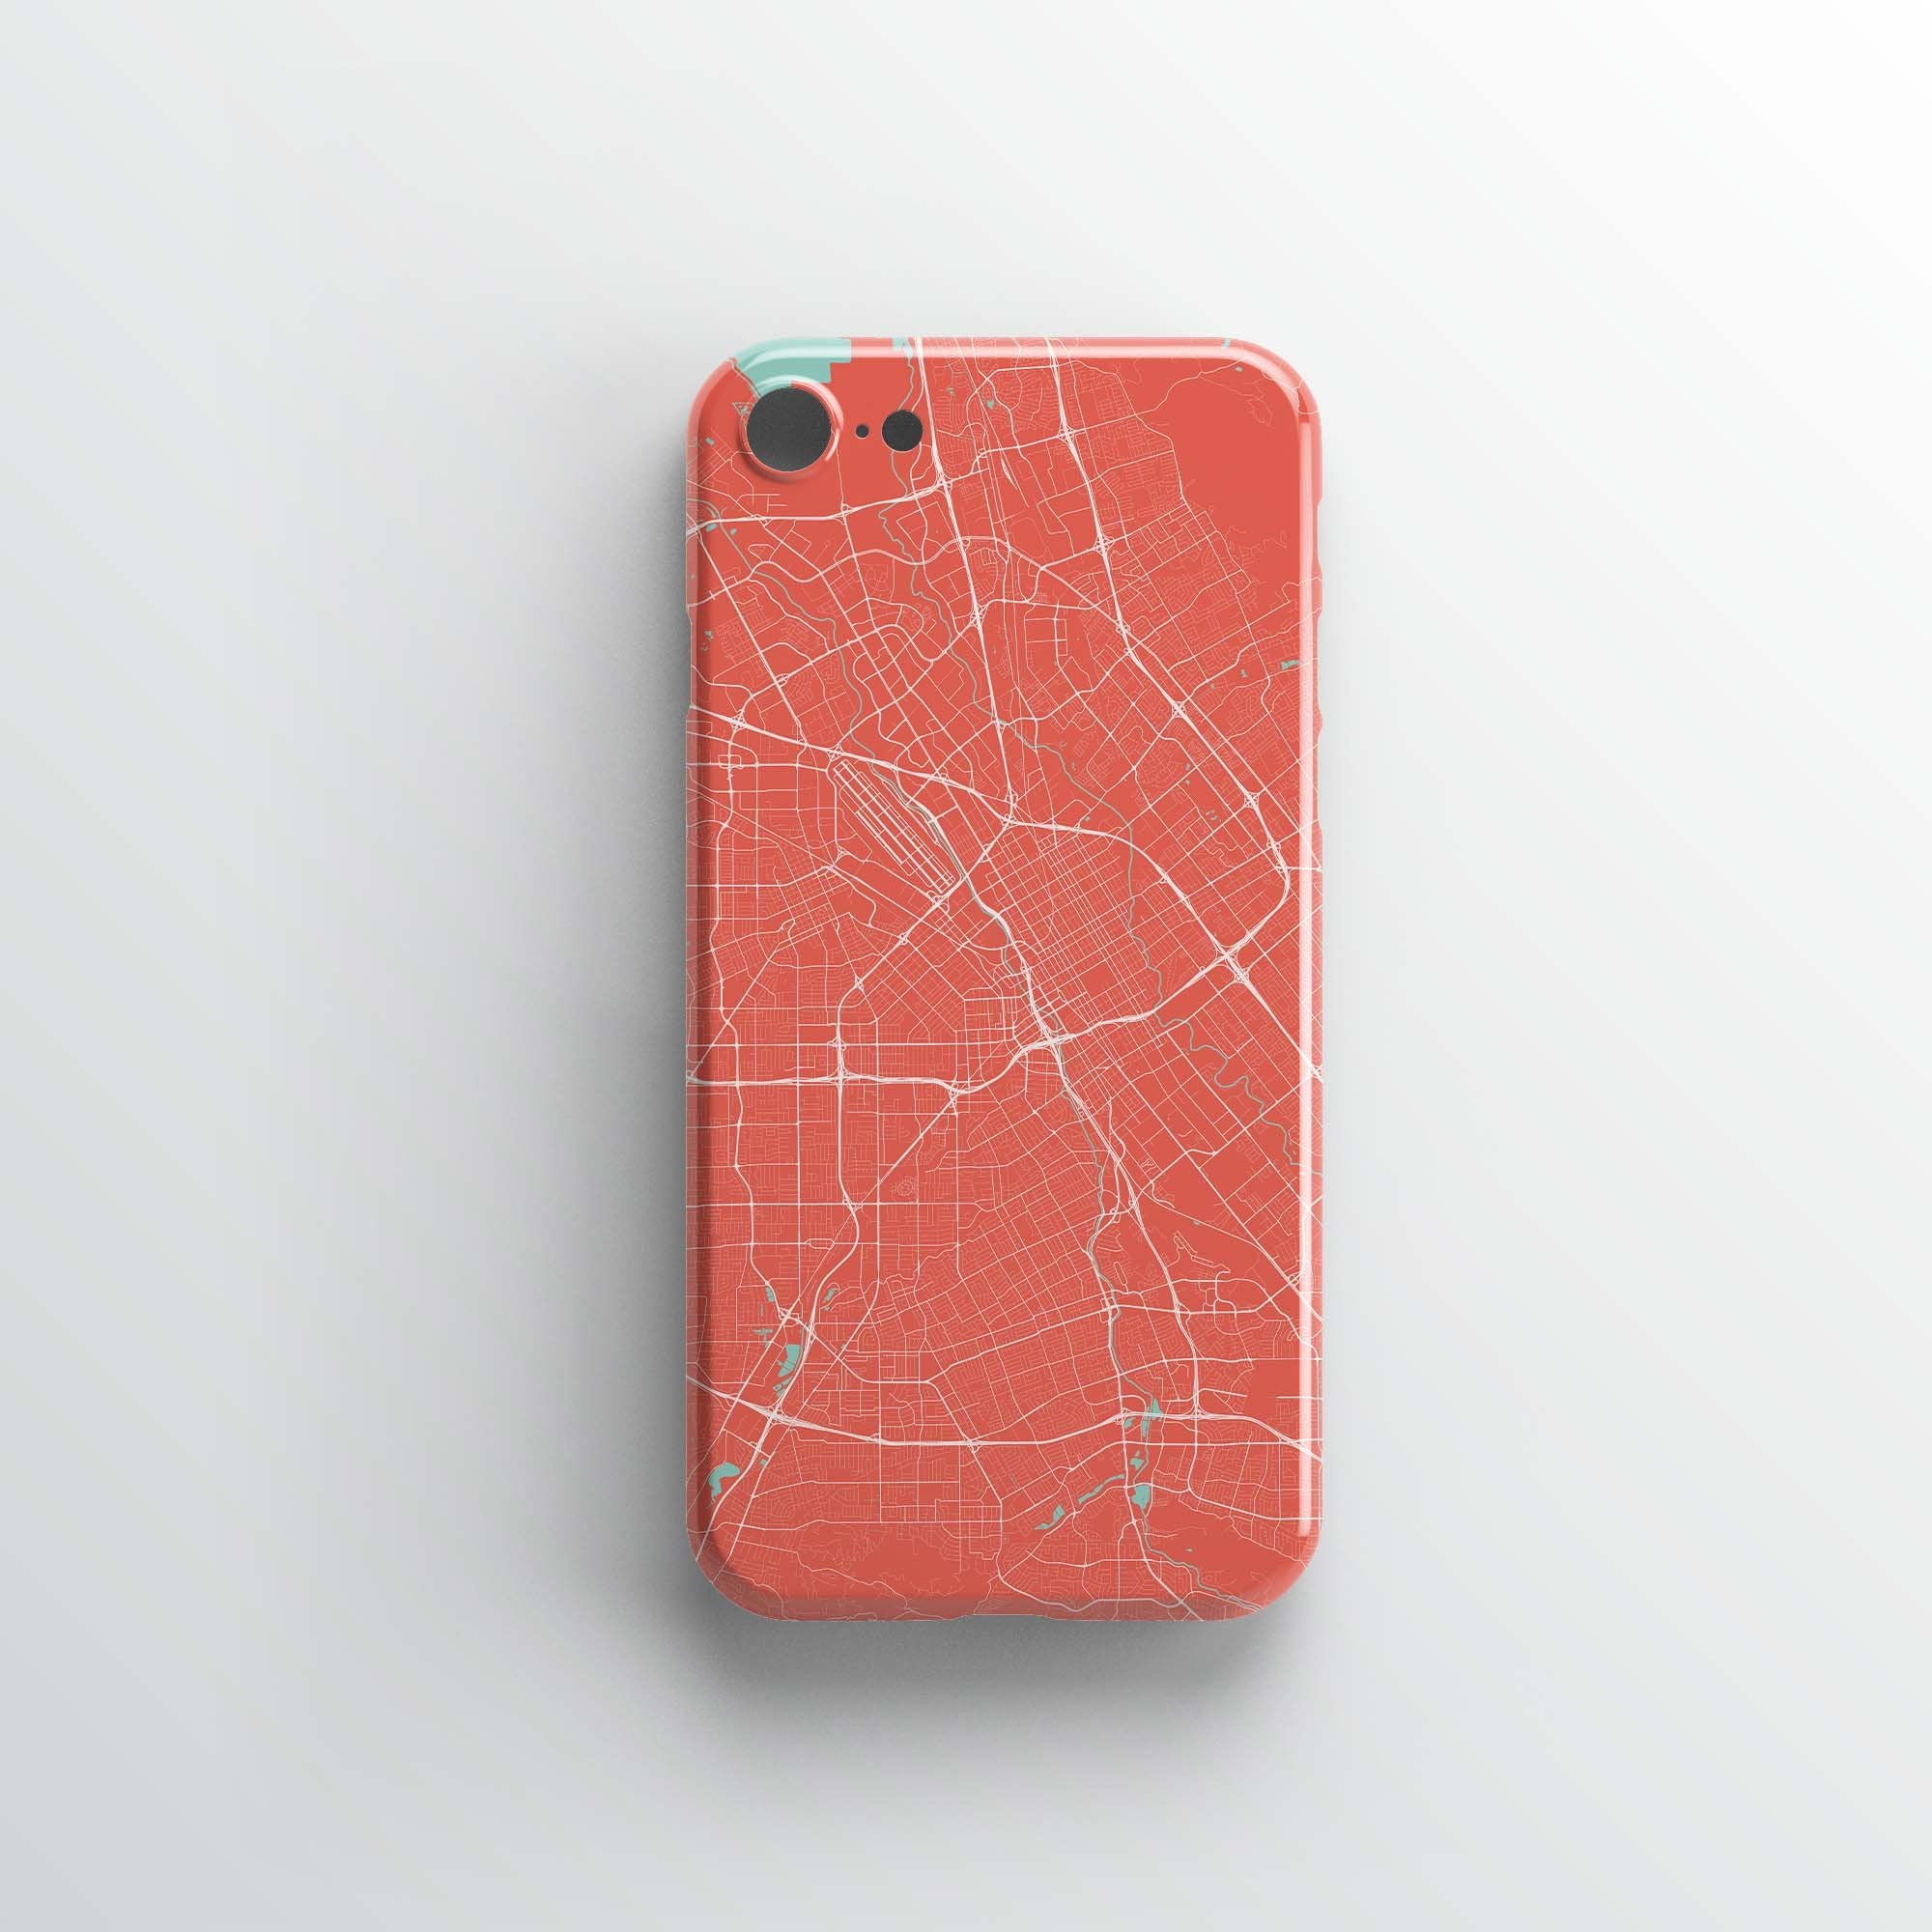 San Jose City iPhone Case